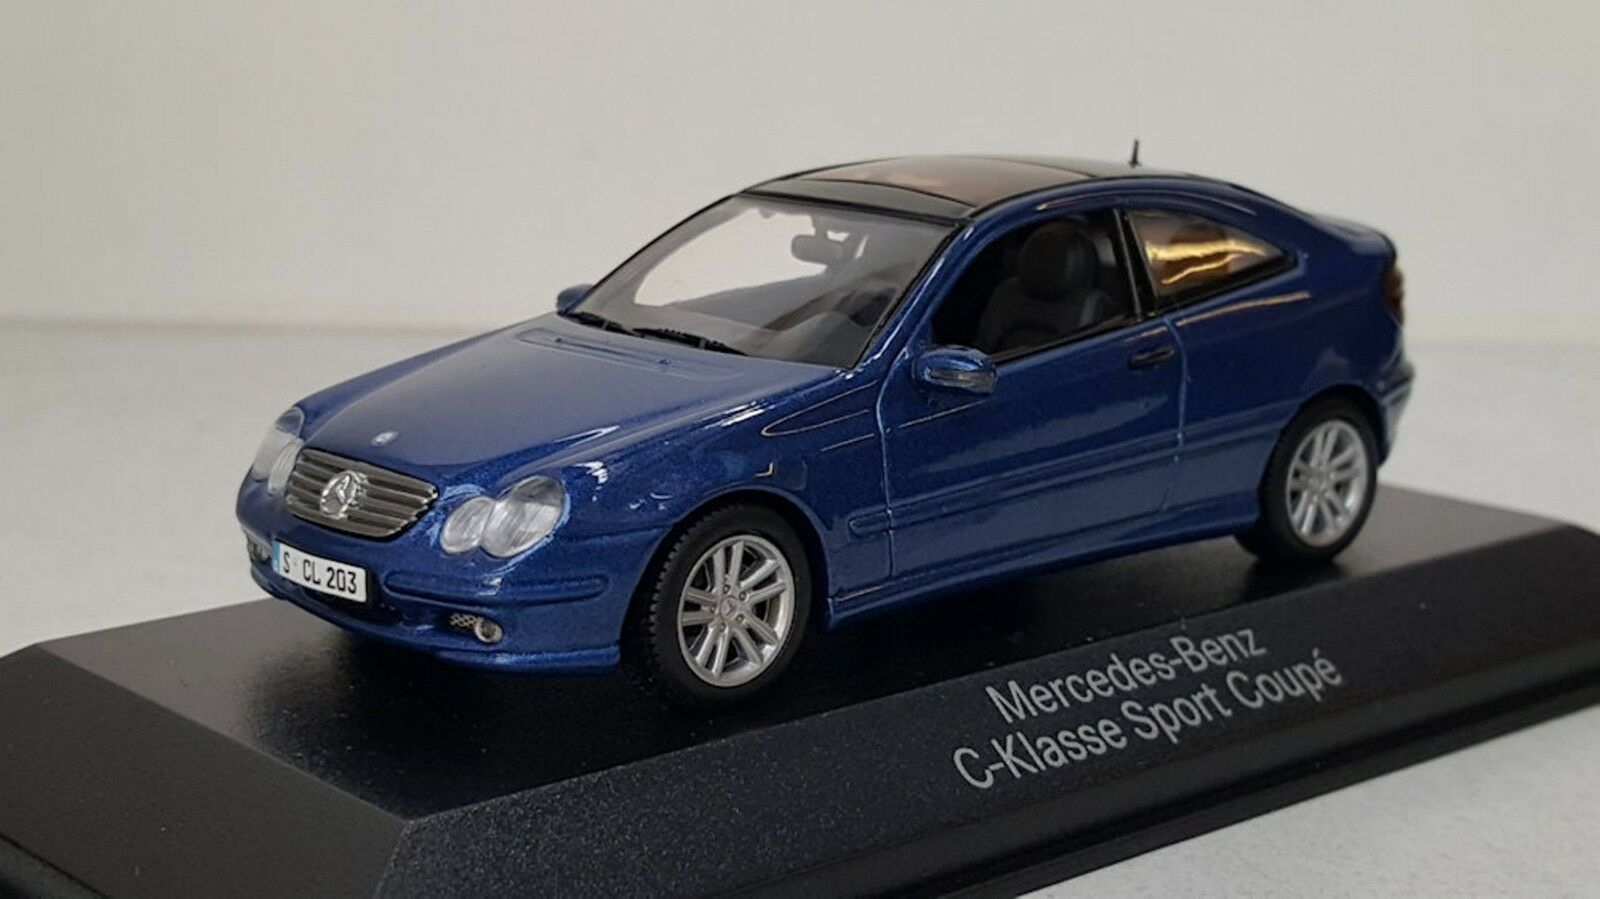 MERCEDES BENZ C KLASSE SPORT COUPE 2000 CL203 JASPER blueE METAL MINICHAMPS 1 43